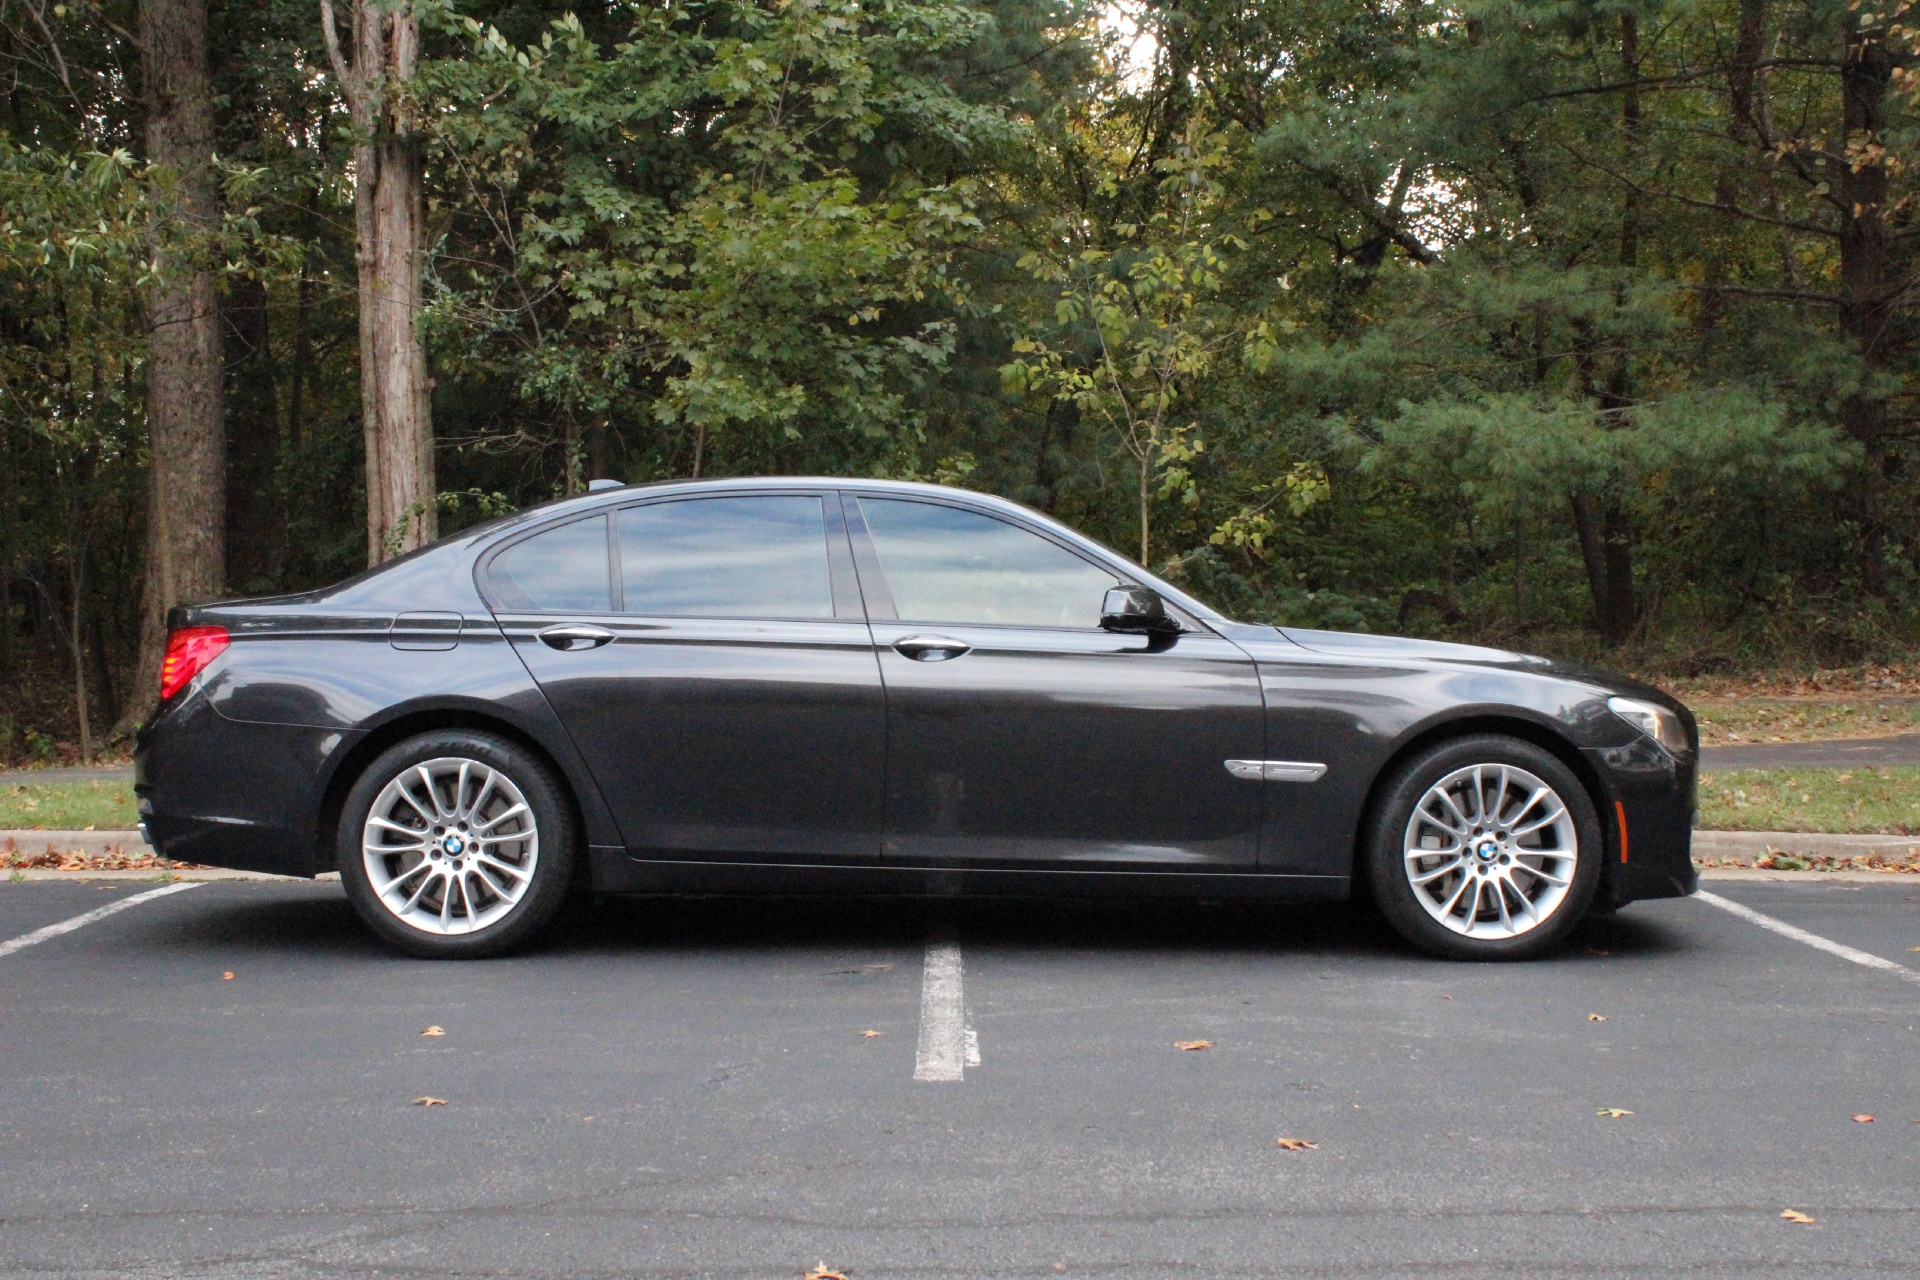 used bmw 7 series 750i xdrive for sale with photos carfax autos post. Black Bedroom Furniture Sets. Home Design Ideas